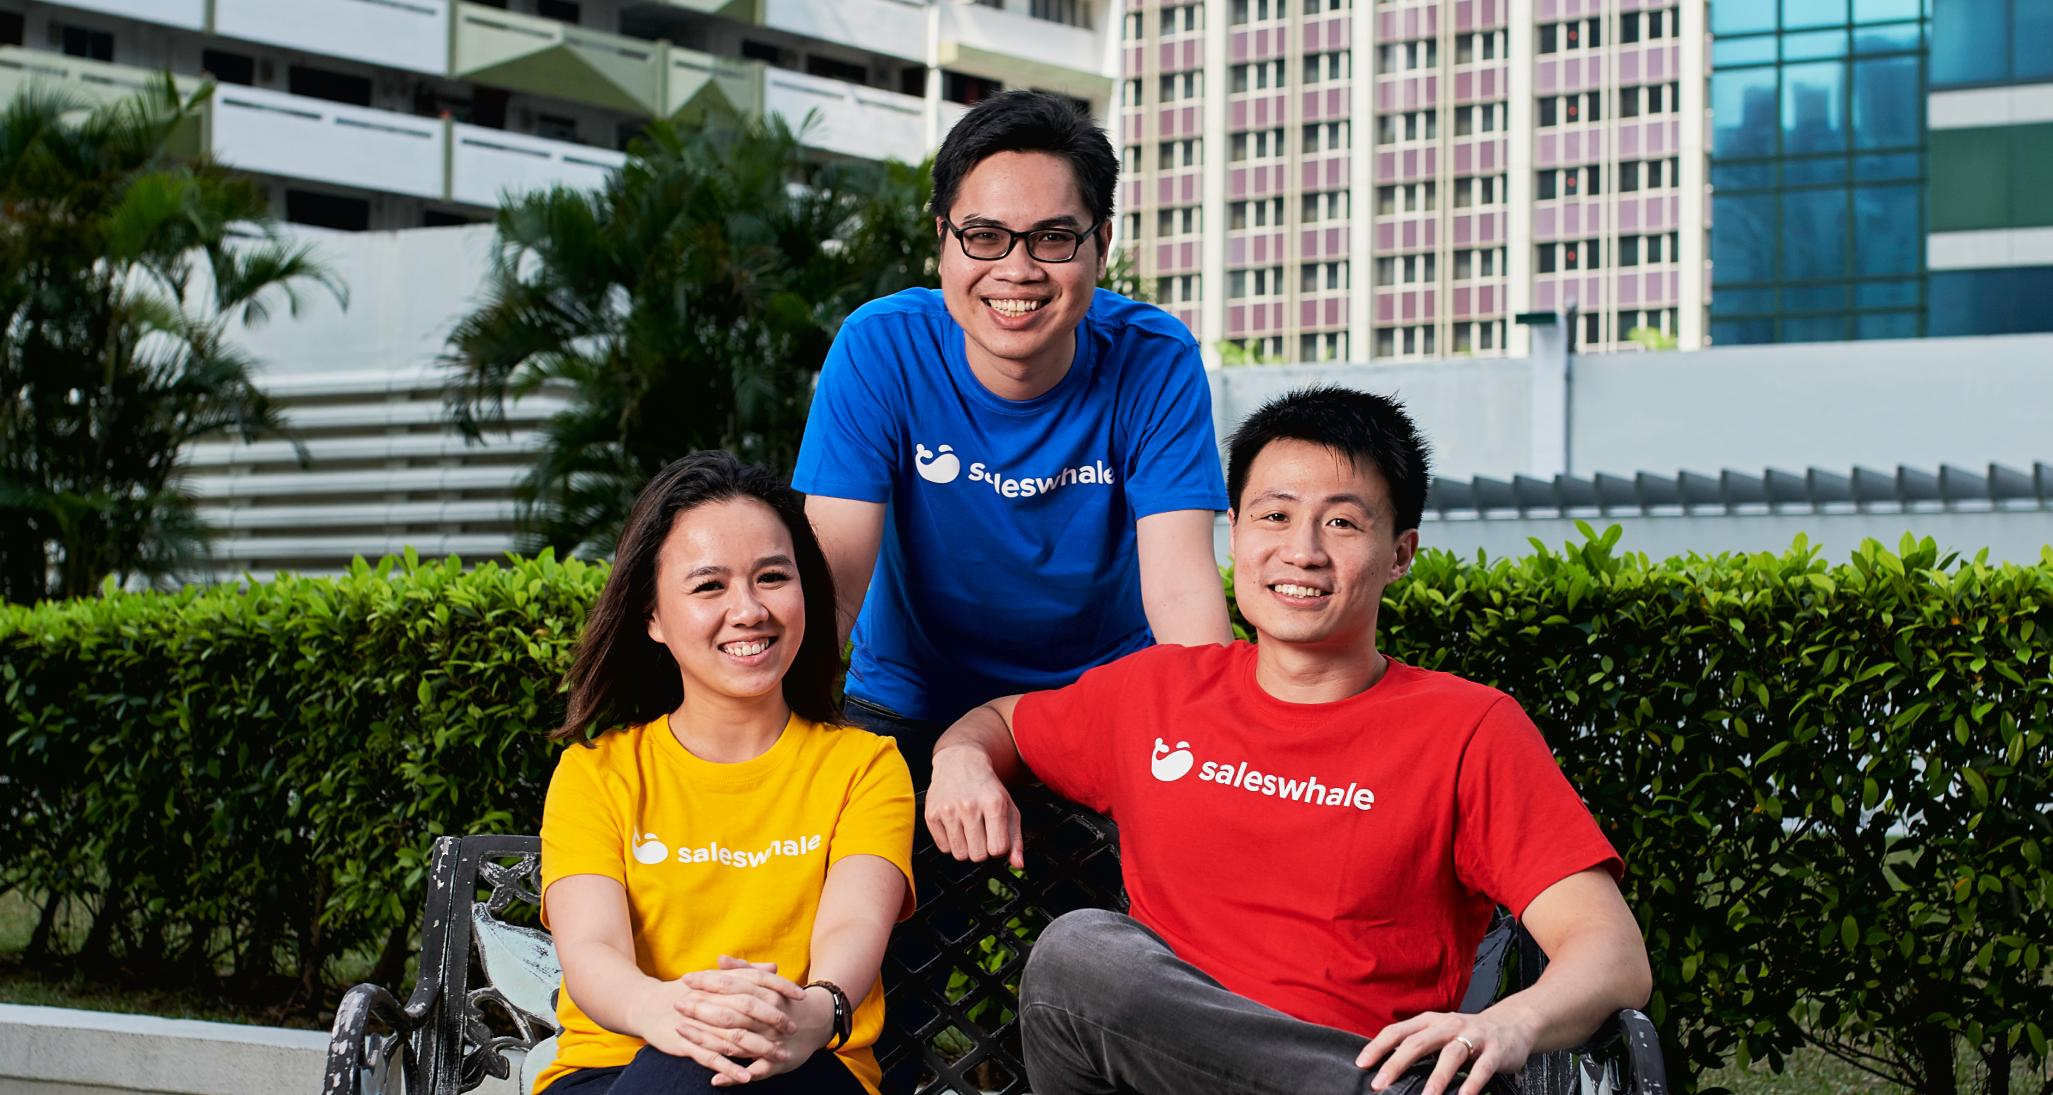 Singapore's SalesWhale raises $5.3M to bring ...